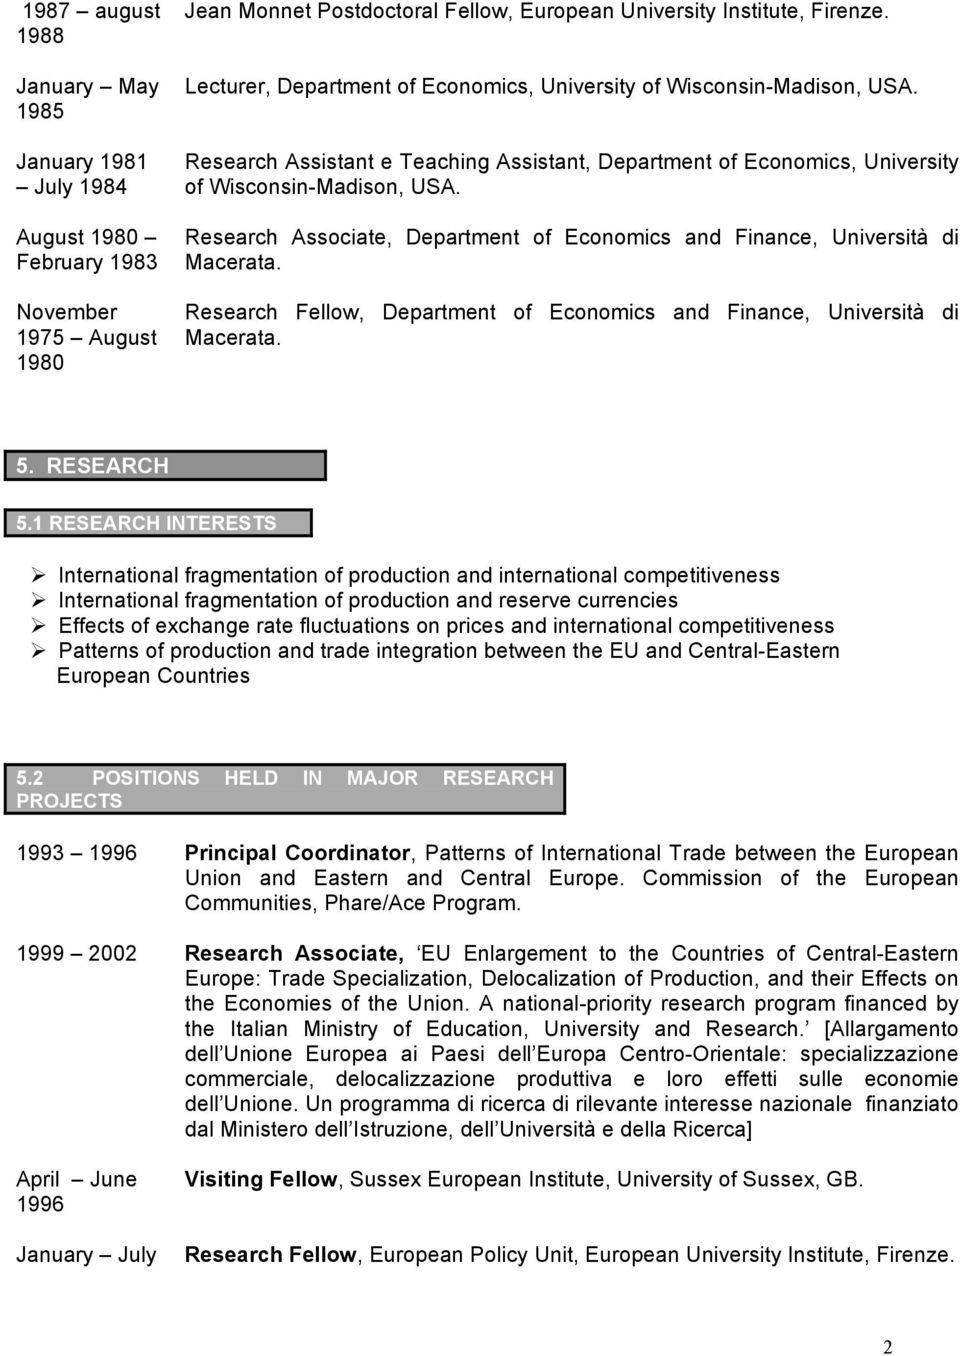 Research Associate, Department of Economics and Finance, Università di Macerata. Research Fellow, Department of Economics and Finance, Università di Macerata. 5. RESEARCH 5.